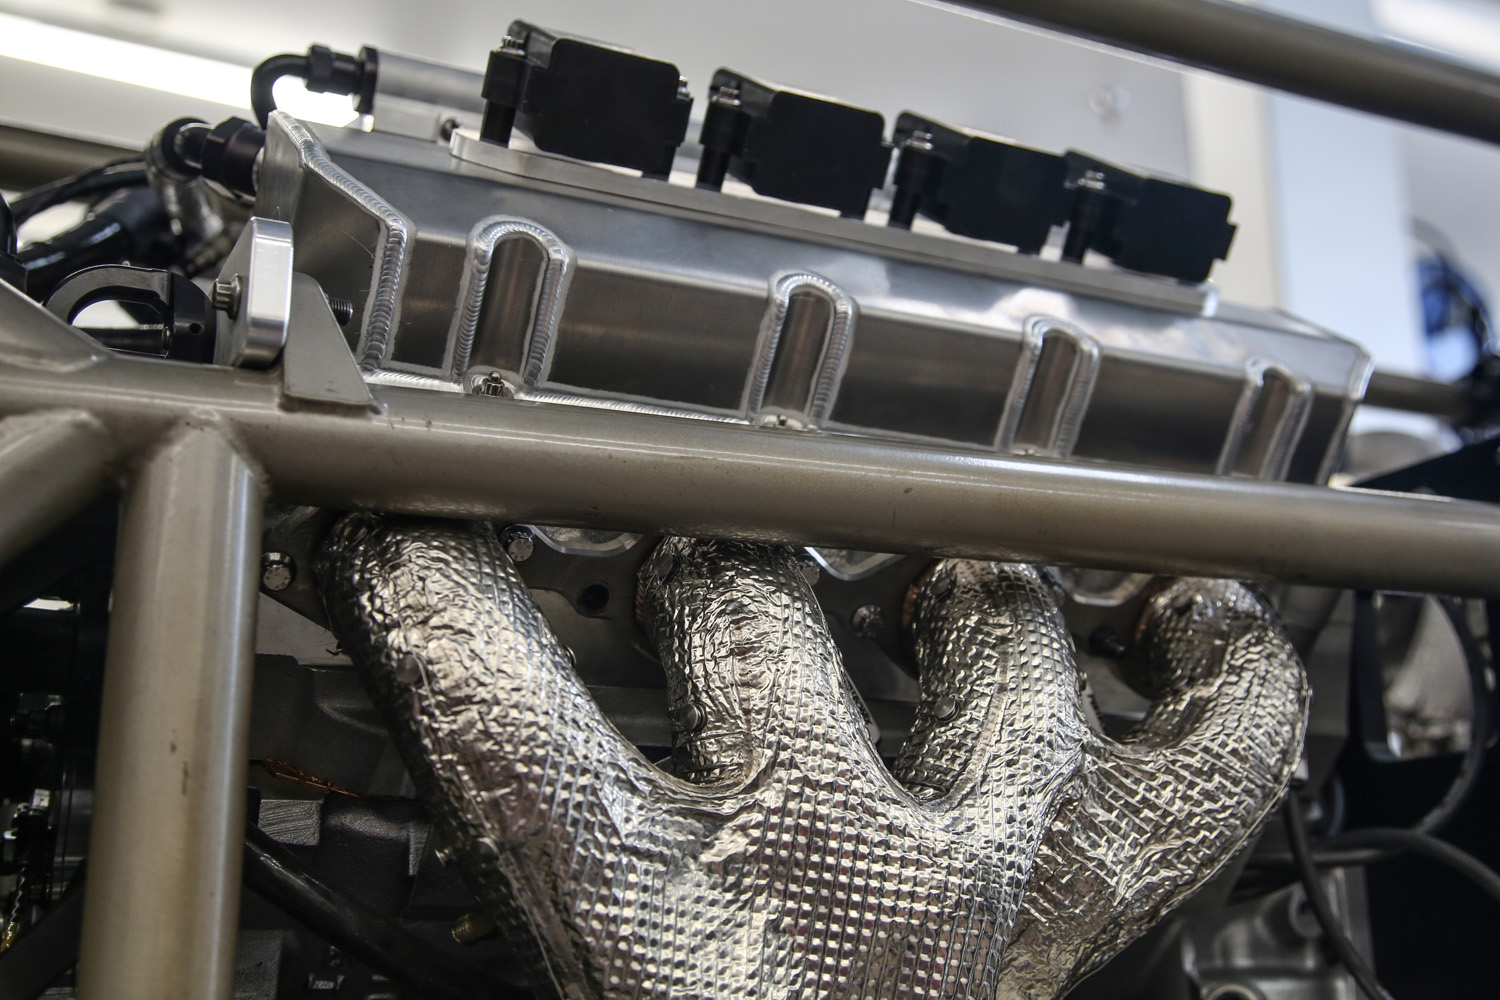 Notice how close the header primary tubes come to the chassis tube. Without lowering the engine the ports would have run directly into the chassis.